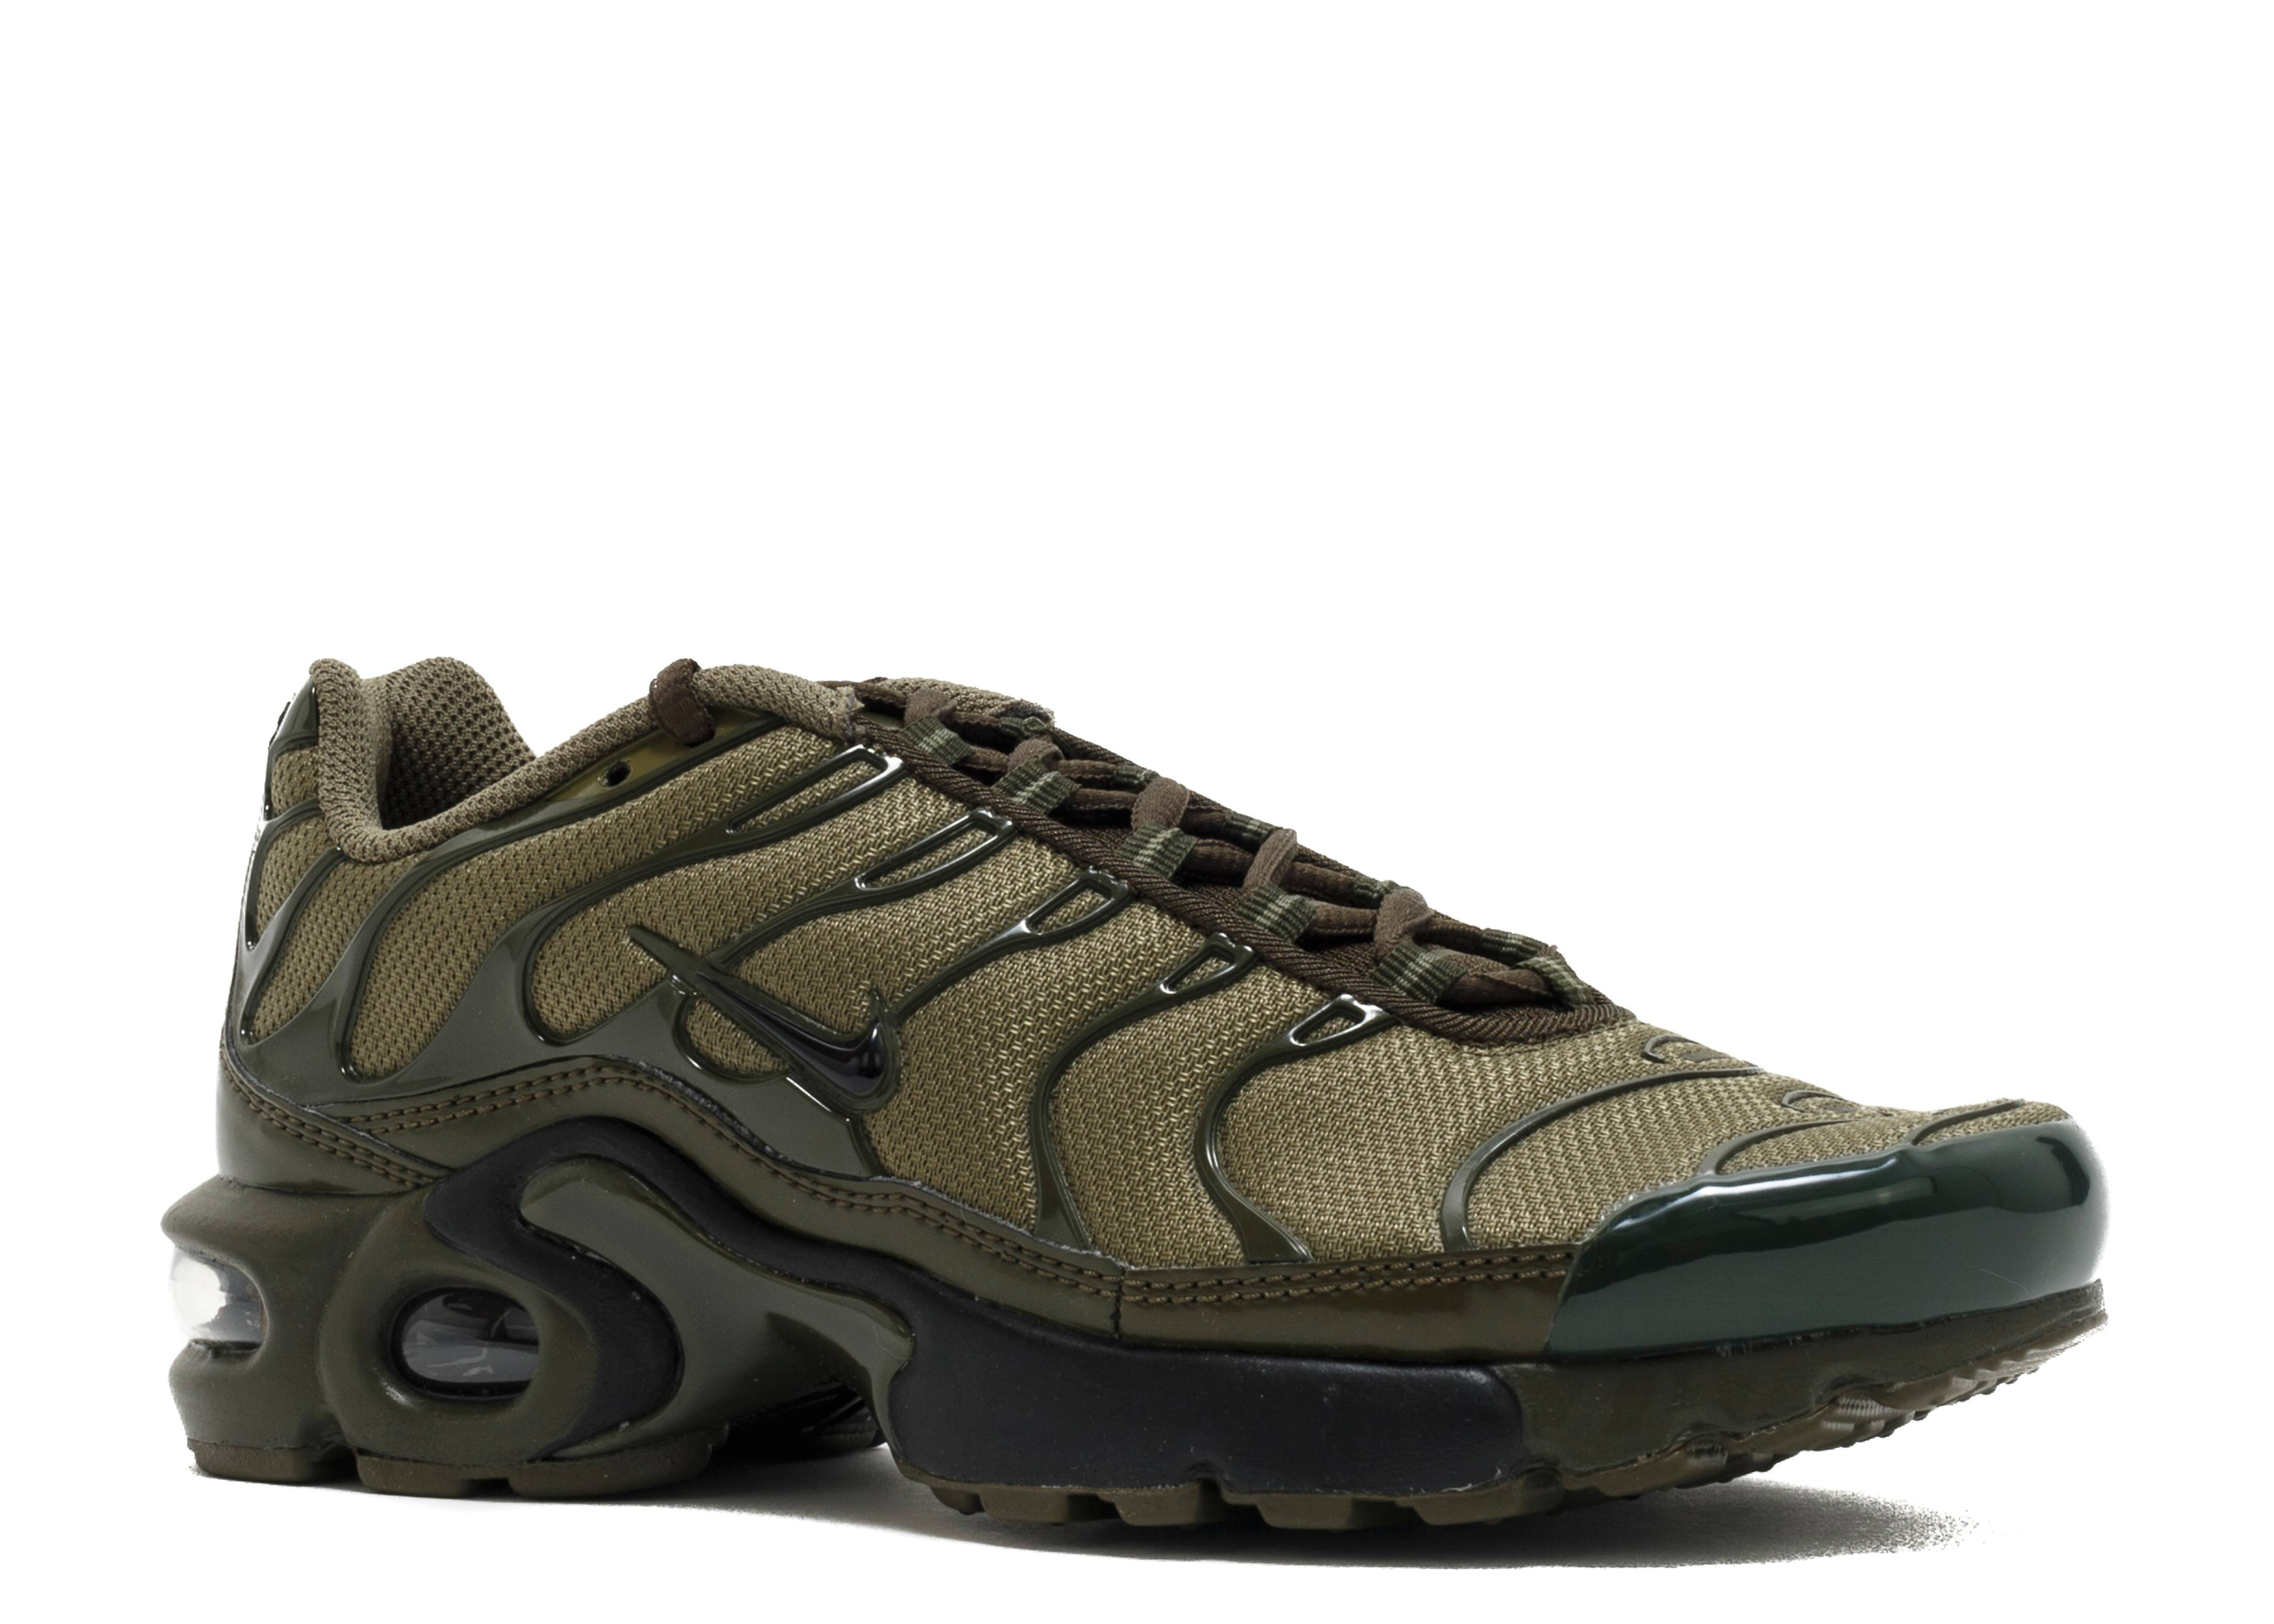 online retailer f8e2a 7cabf ... Shoes on nike air max plus gs tn tuned cargo olive ...